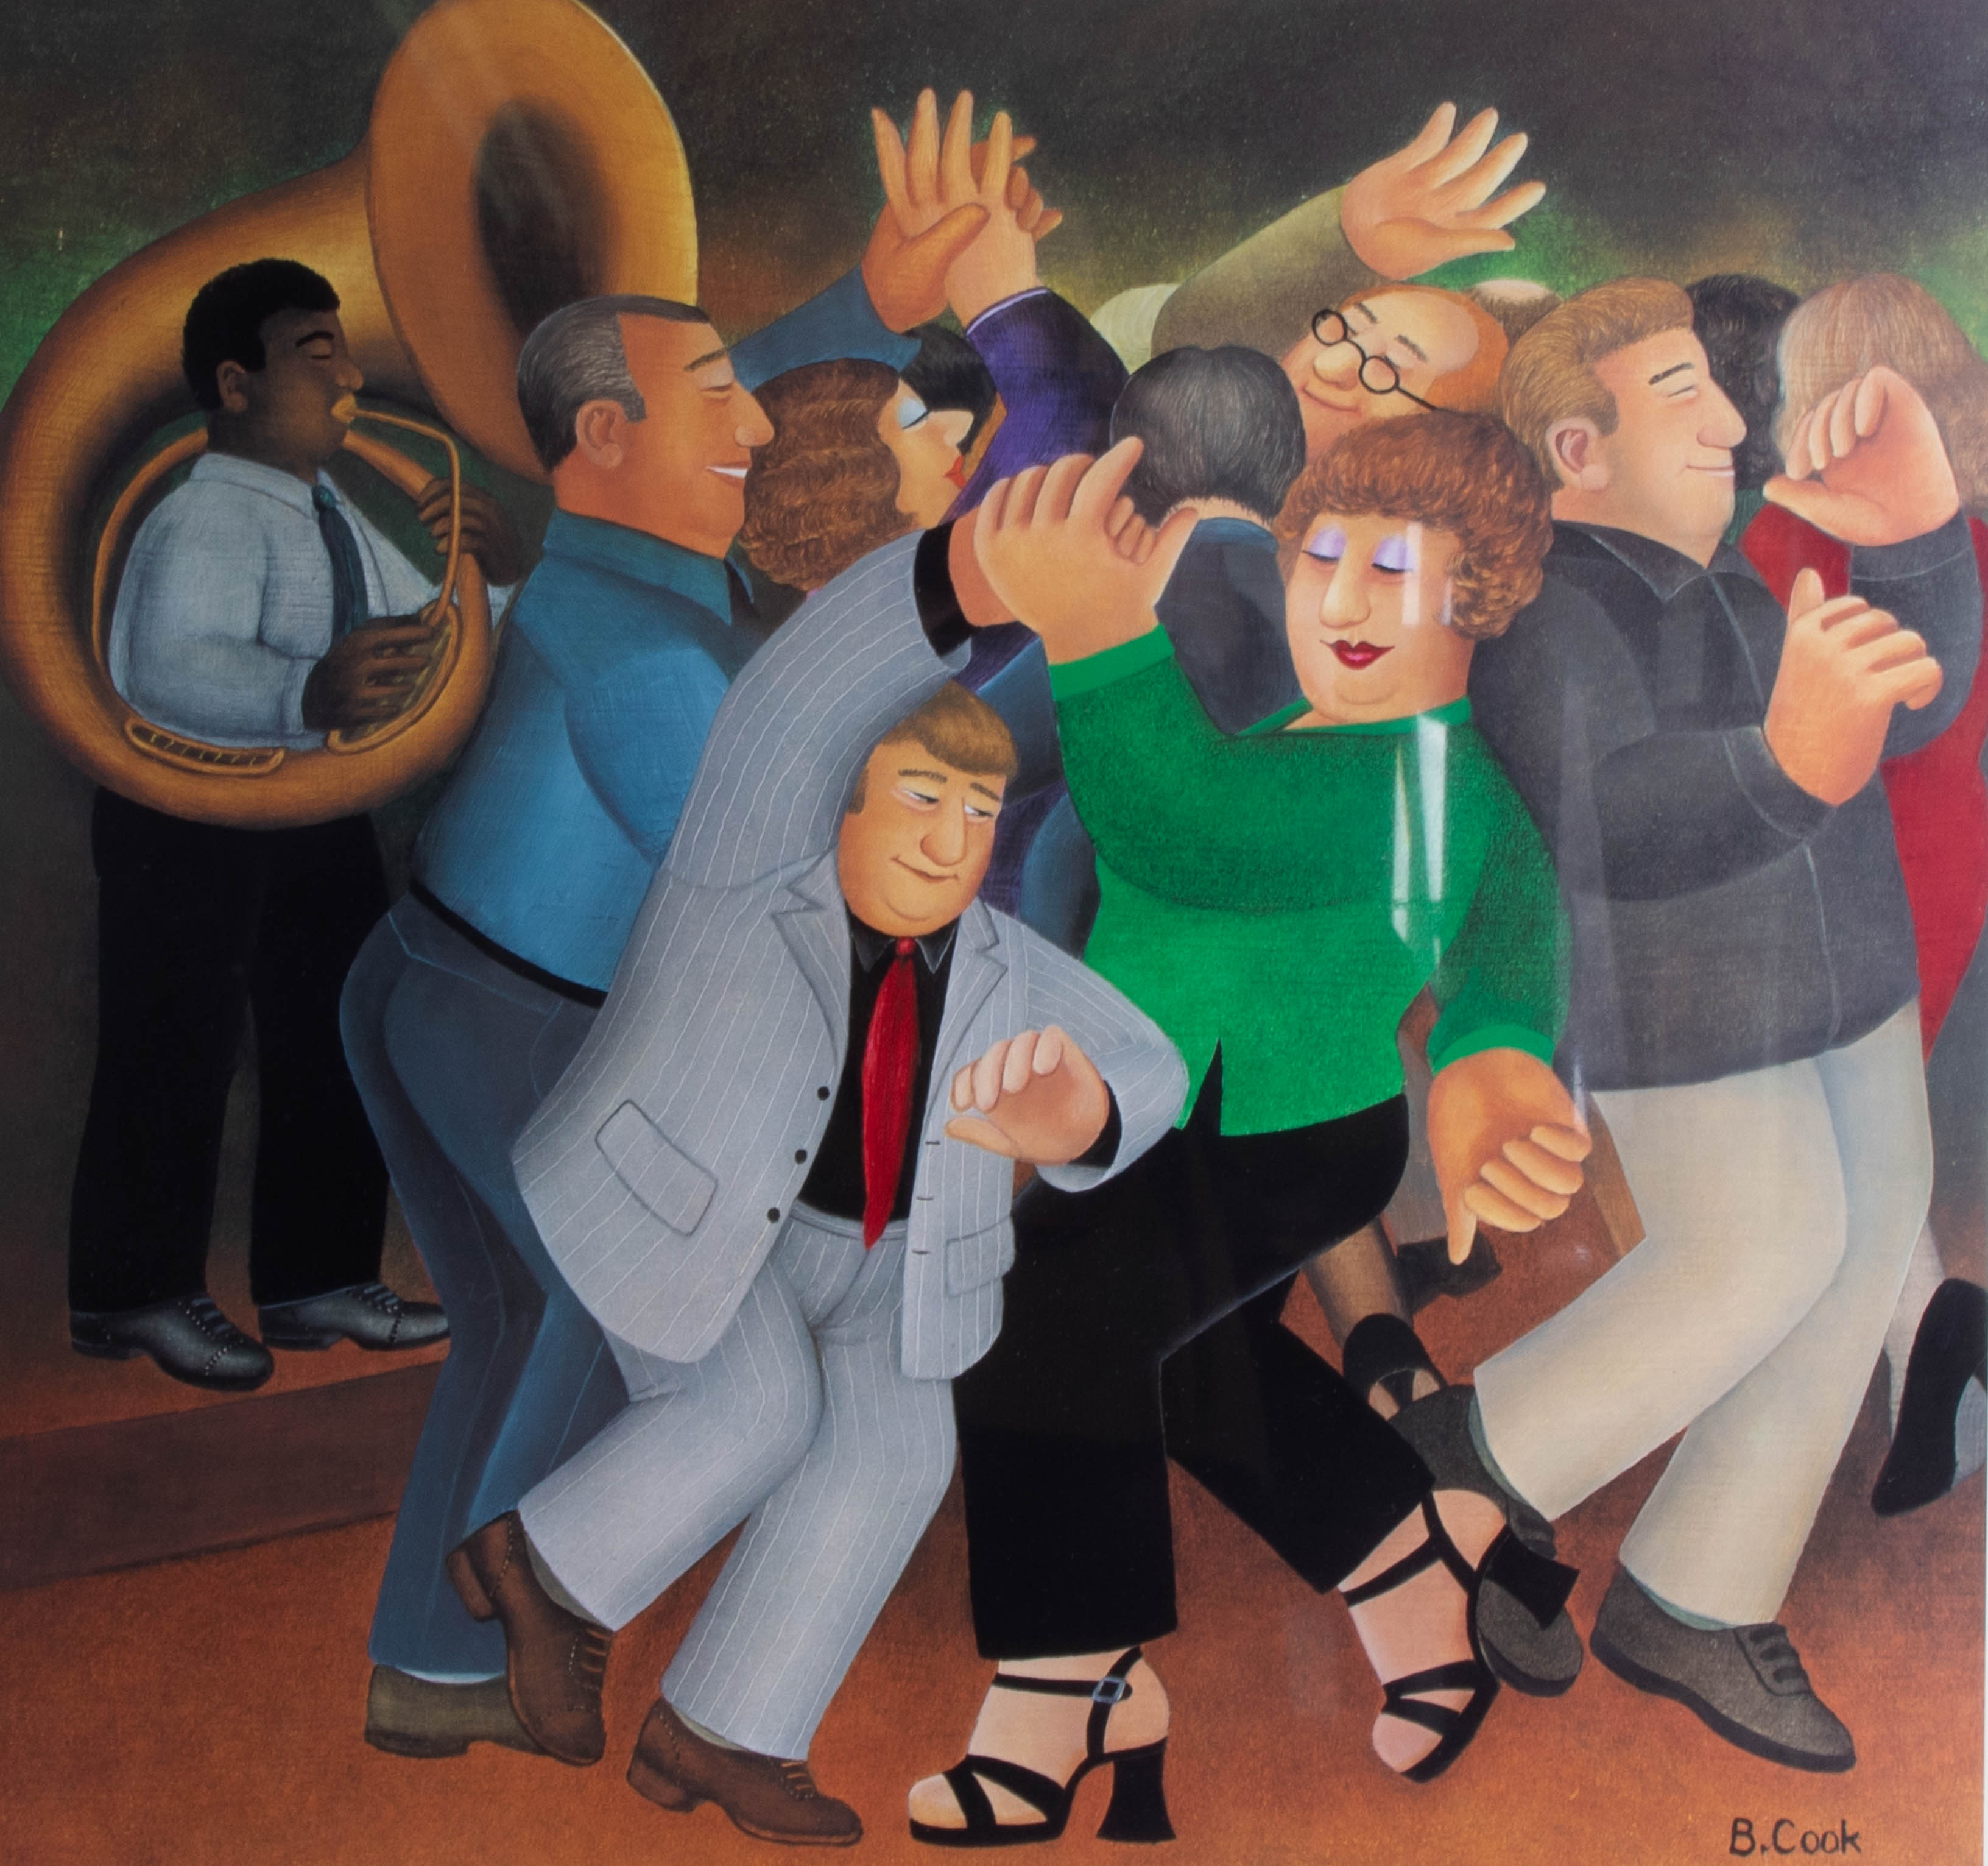 Lot 031 - Beryl Cook (1926-2008), 'Jiving to Jazz' signed limited edition print, No 332/650, published by